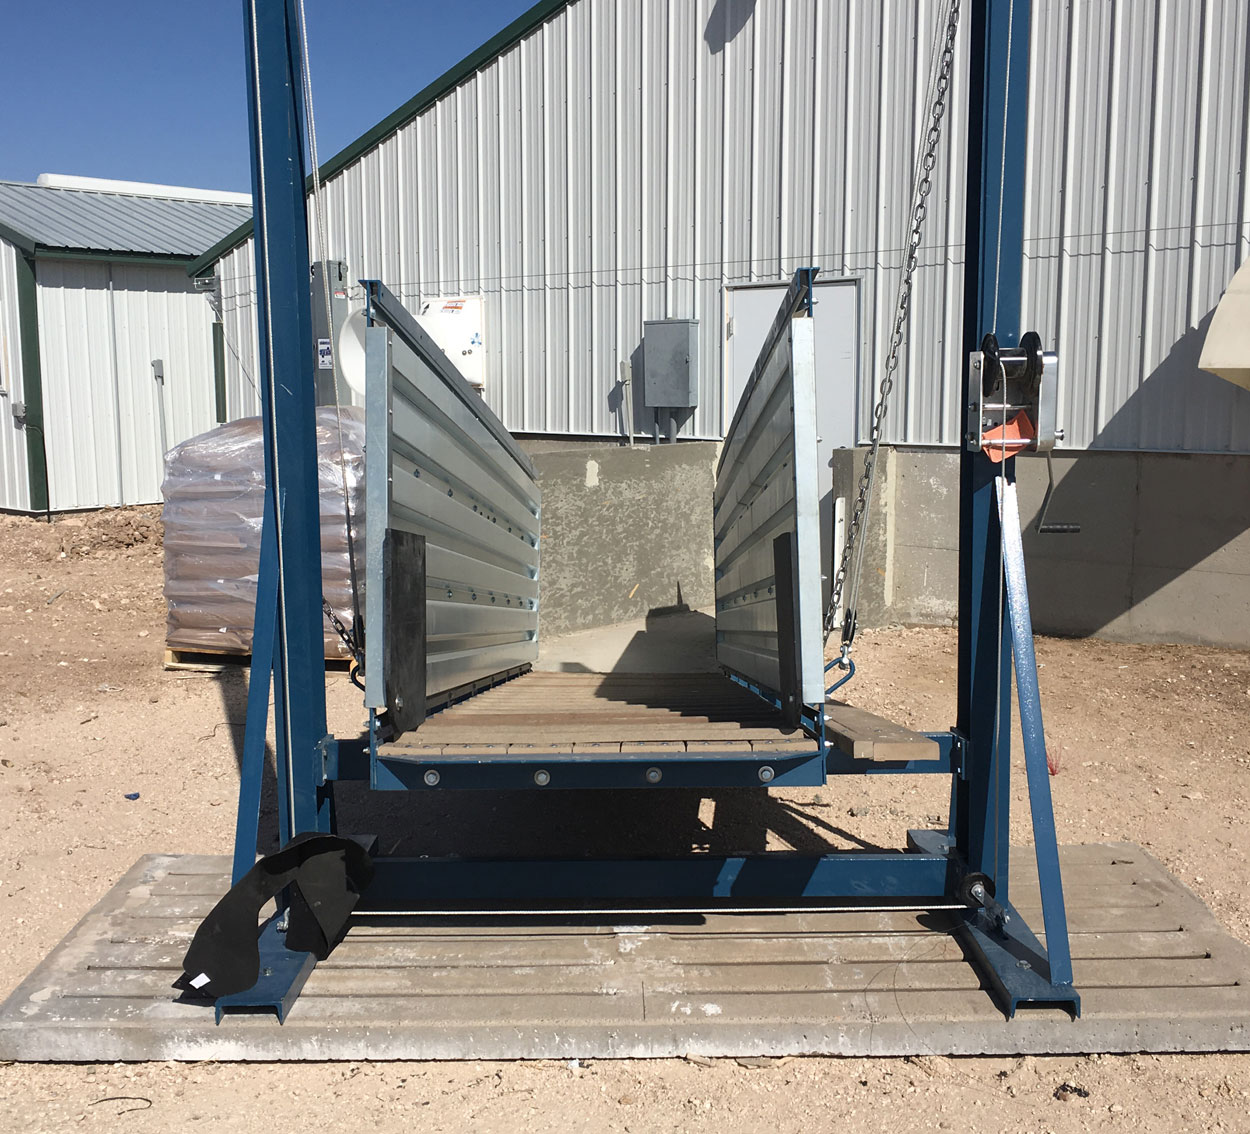 Loading crew personnel can navigate the chute and control pig flow using the walk board mounted on the exterior of all outside walkway chute models.